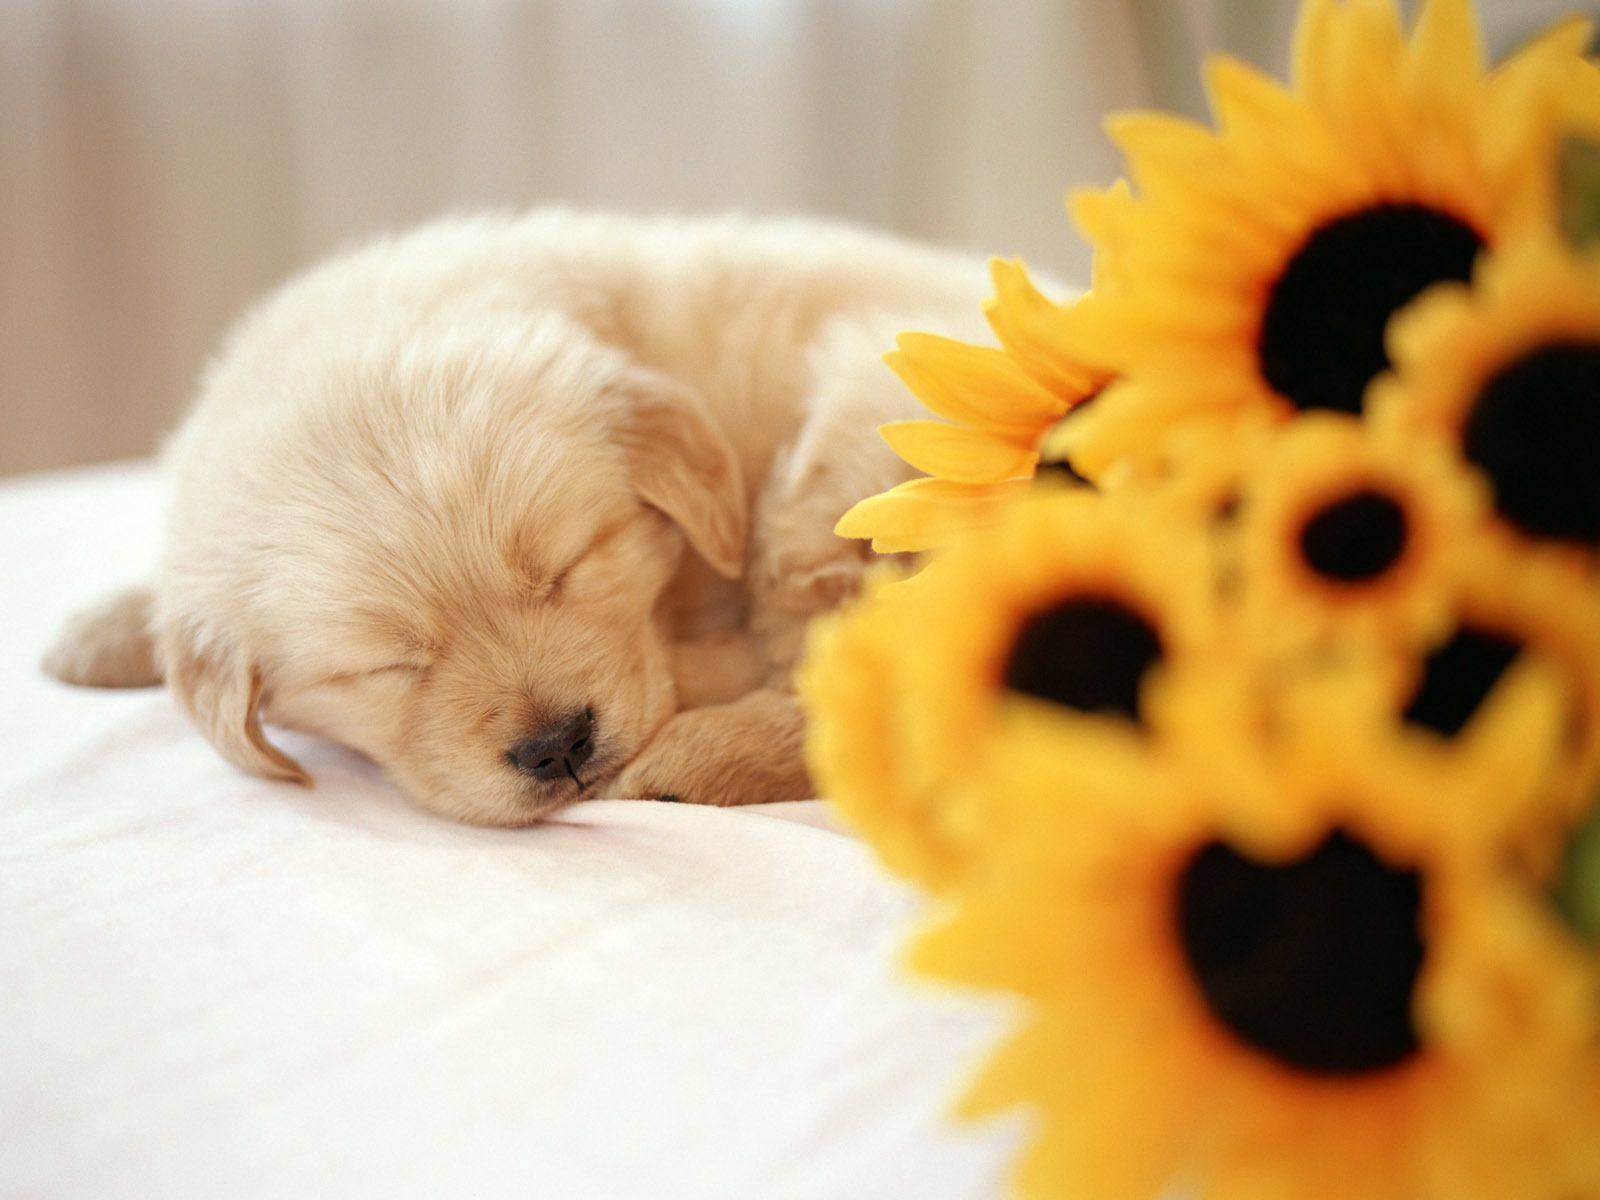 Puppies Wallpaper So Cute Puppy Wallpaper Cute Puppies Puppy Backgrounds